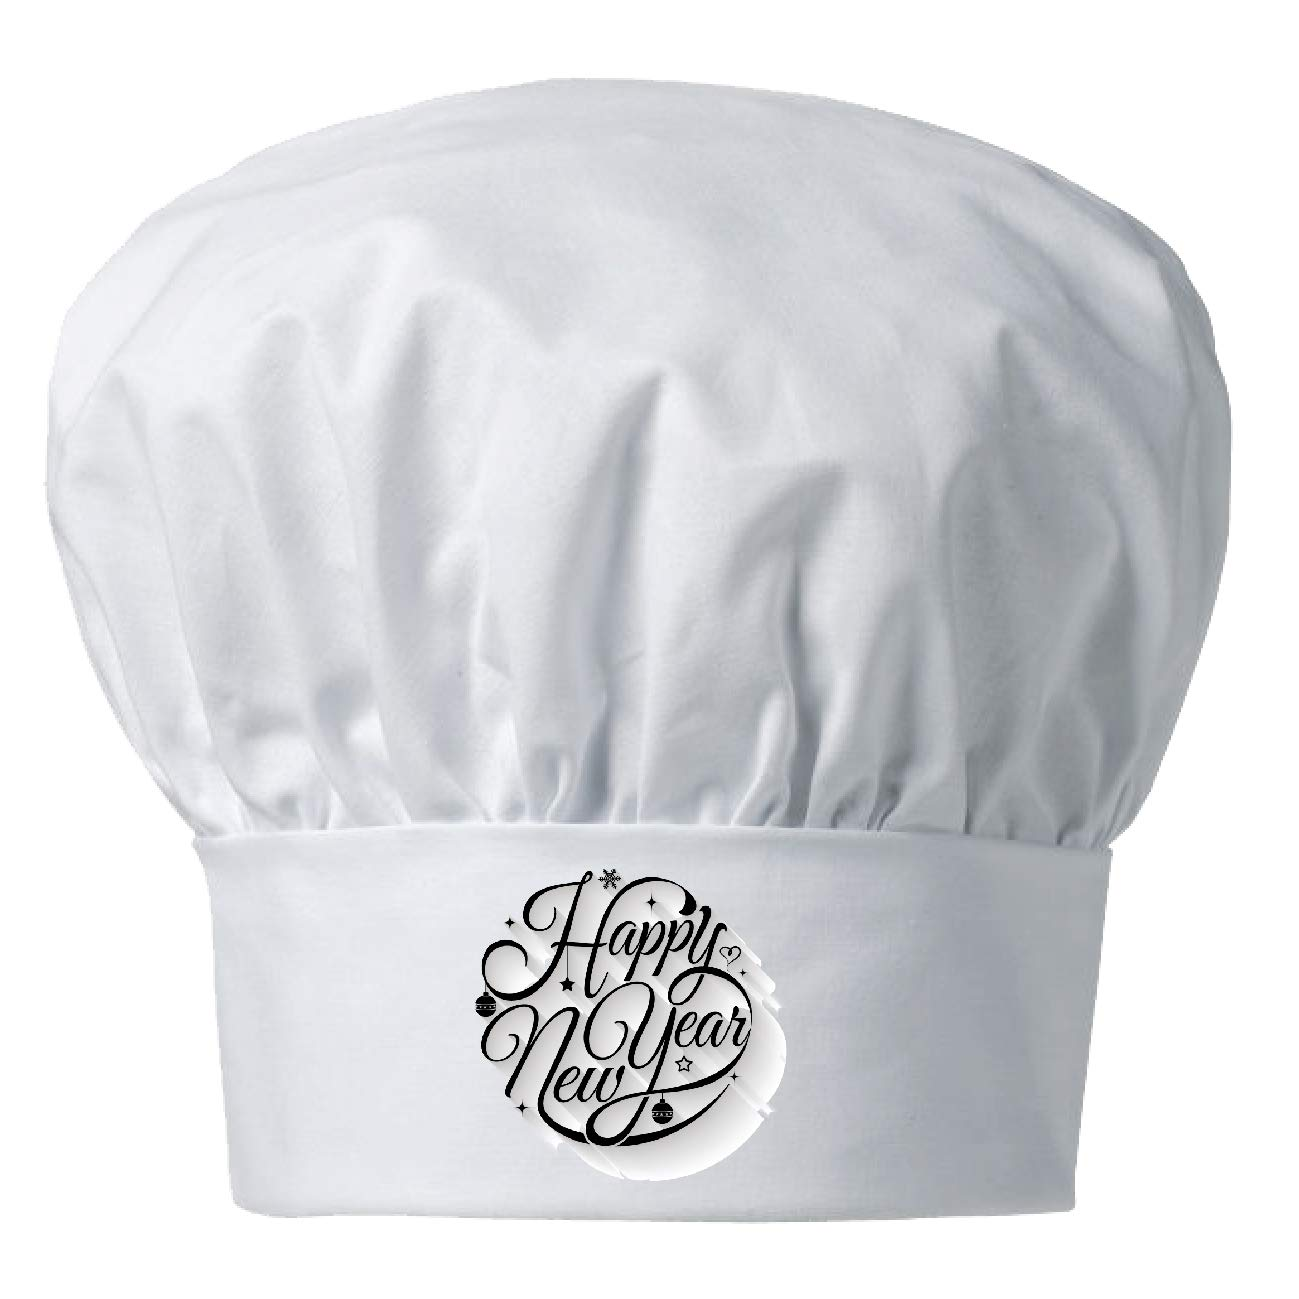 My Custom Style Cappello Chef Bianco Cotone#Natale - Christmas Time#